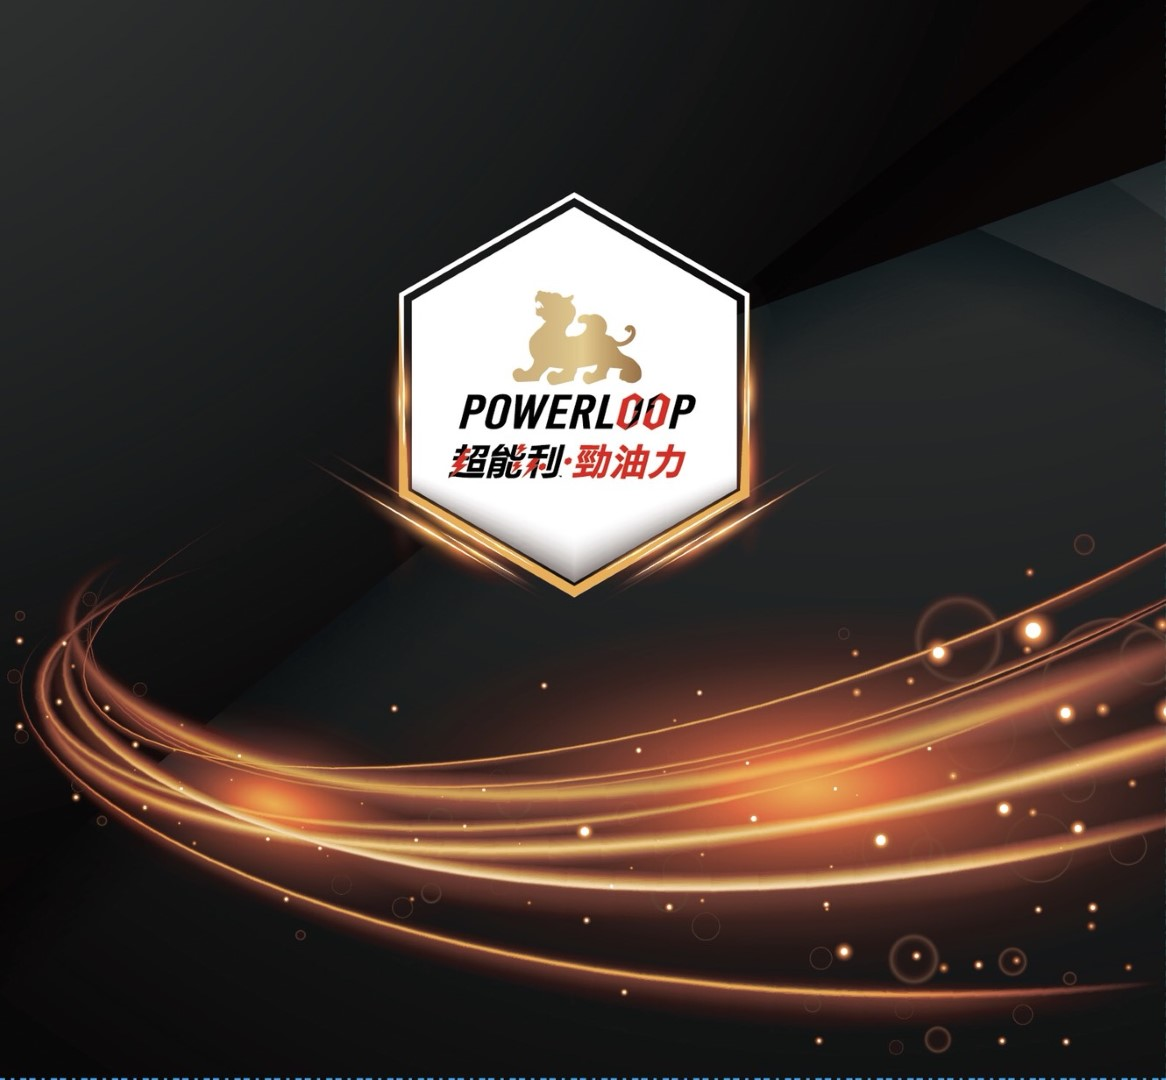 Powerloopㄧ超能利•勁油力